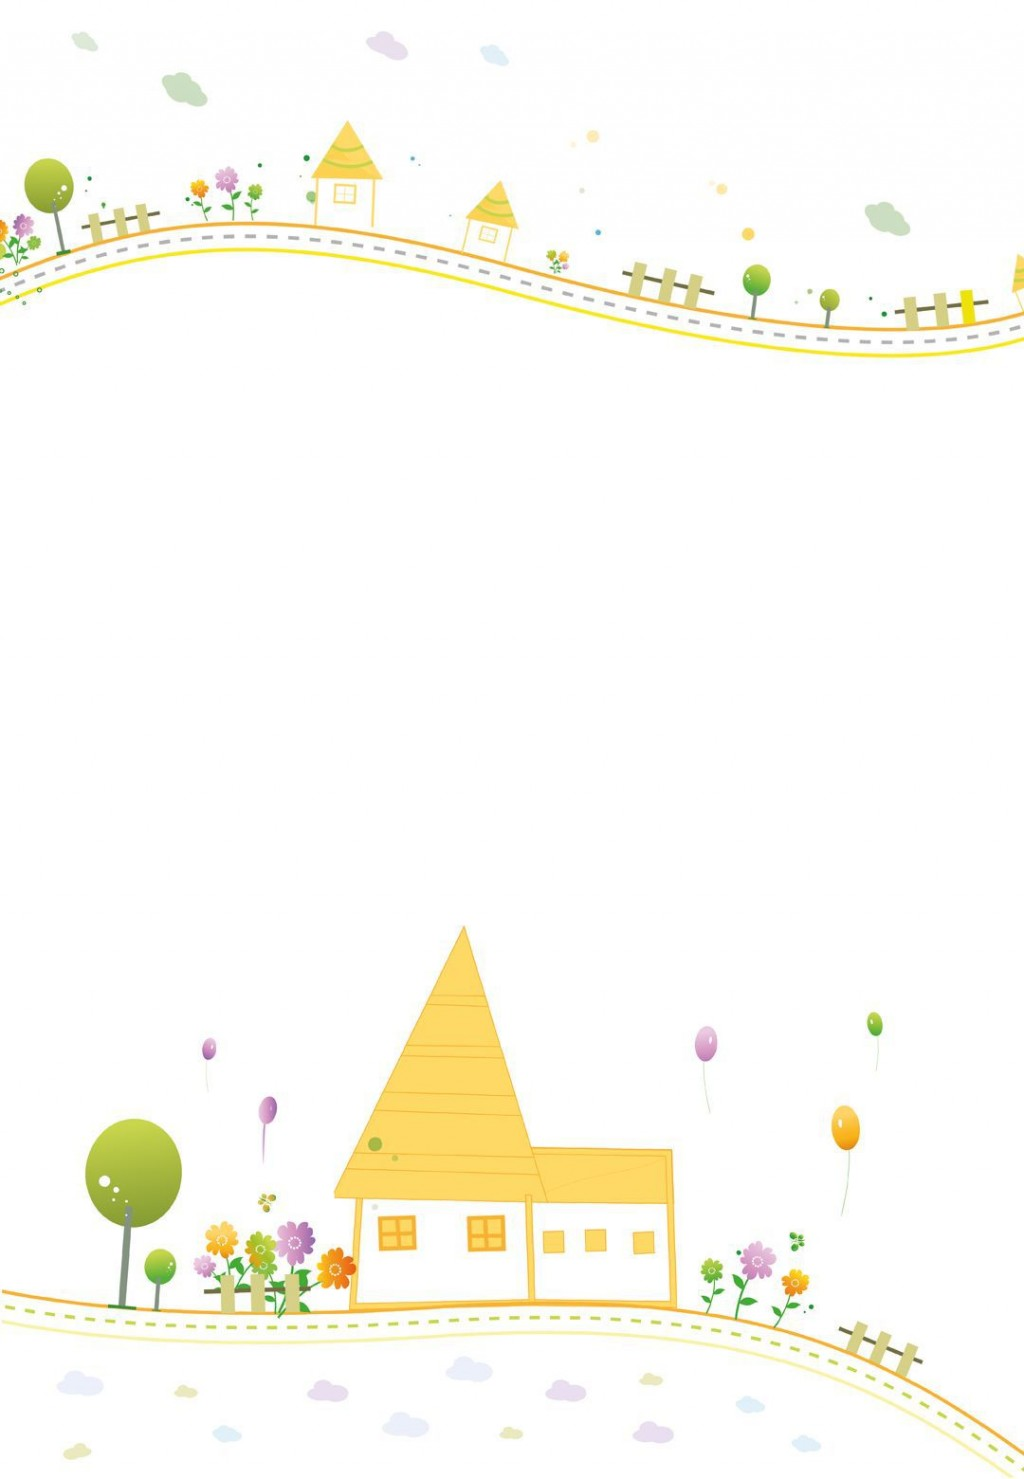 000 Unforgettable Housewarming Party Invitation Template Highest Clarity  Templates Free Download CardLarge